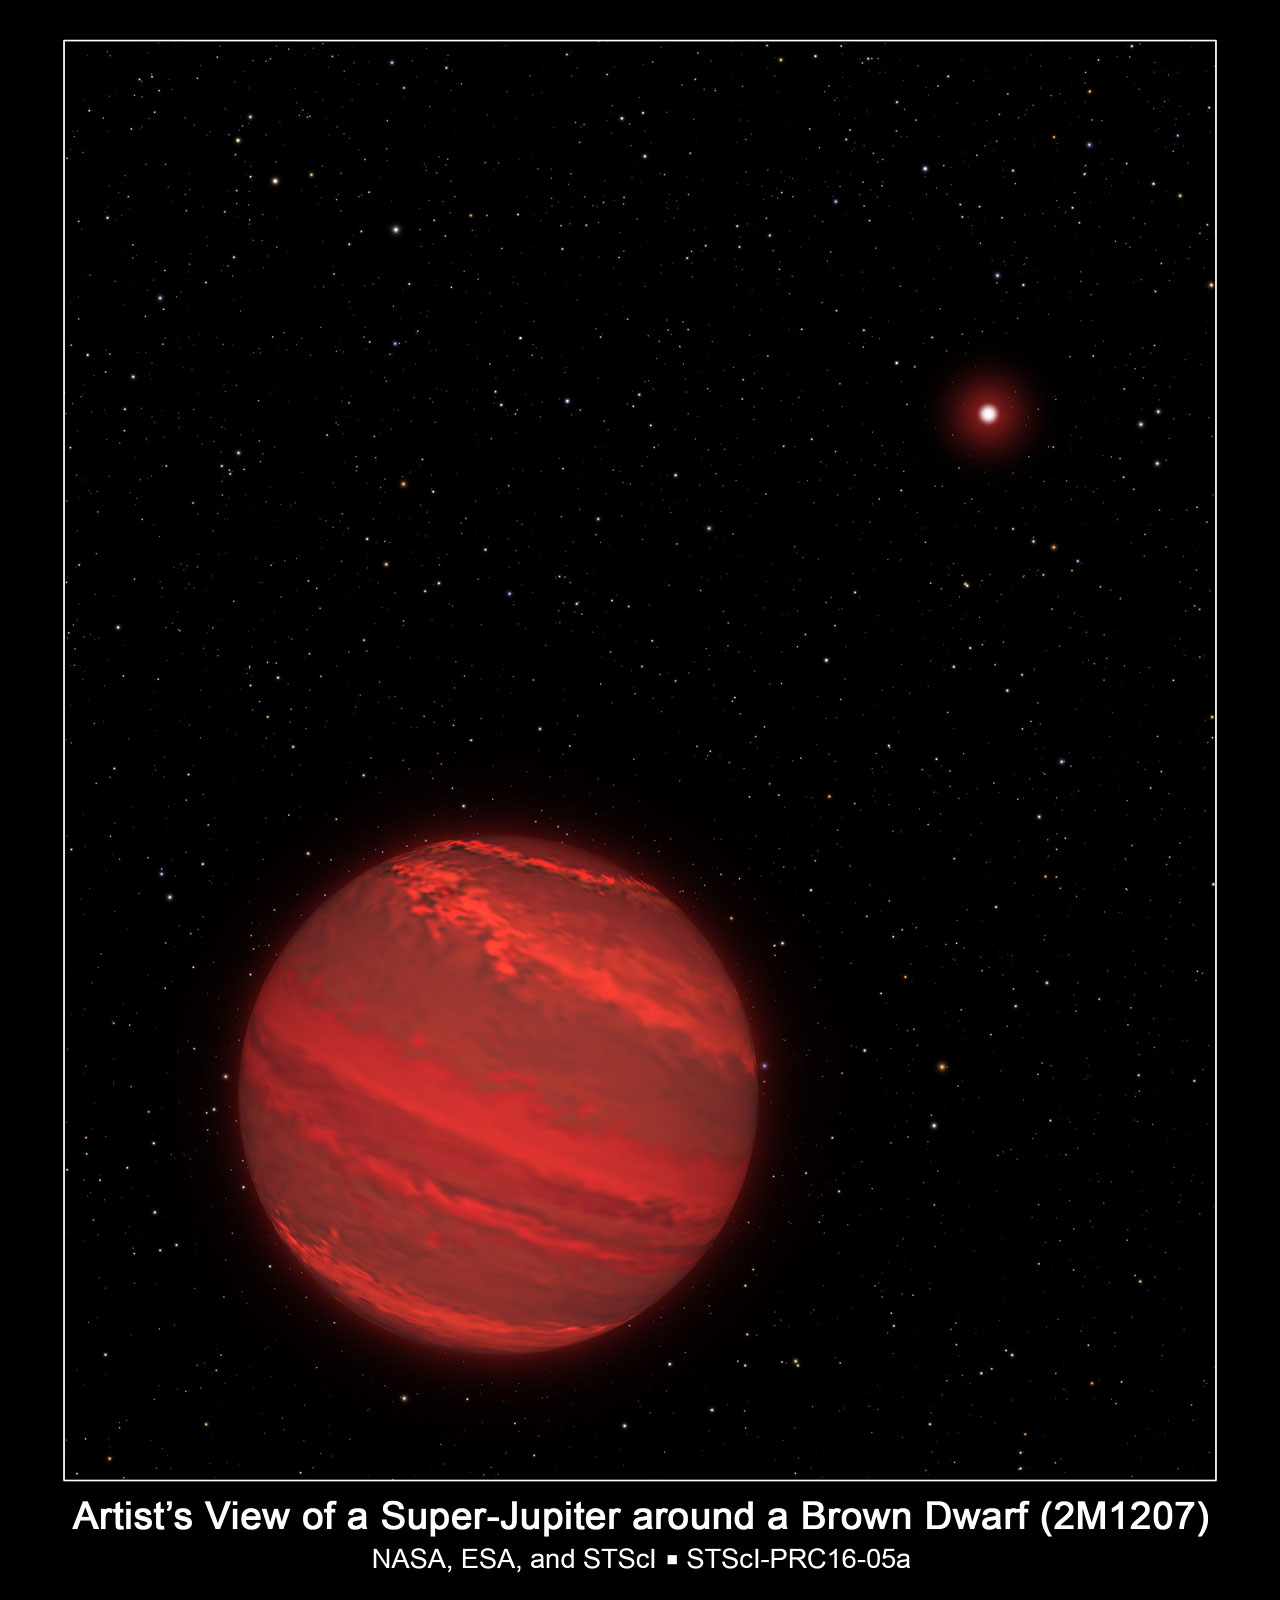 Artist's View of a Super-Jupiter around a Brown Dwarf (2M1207)